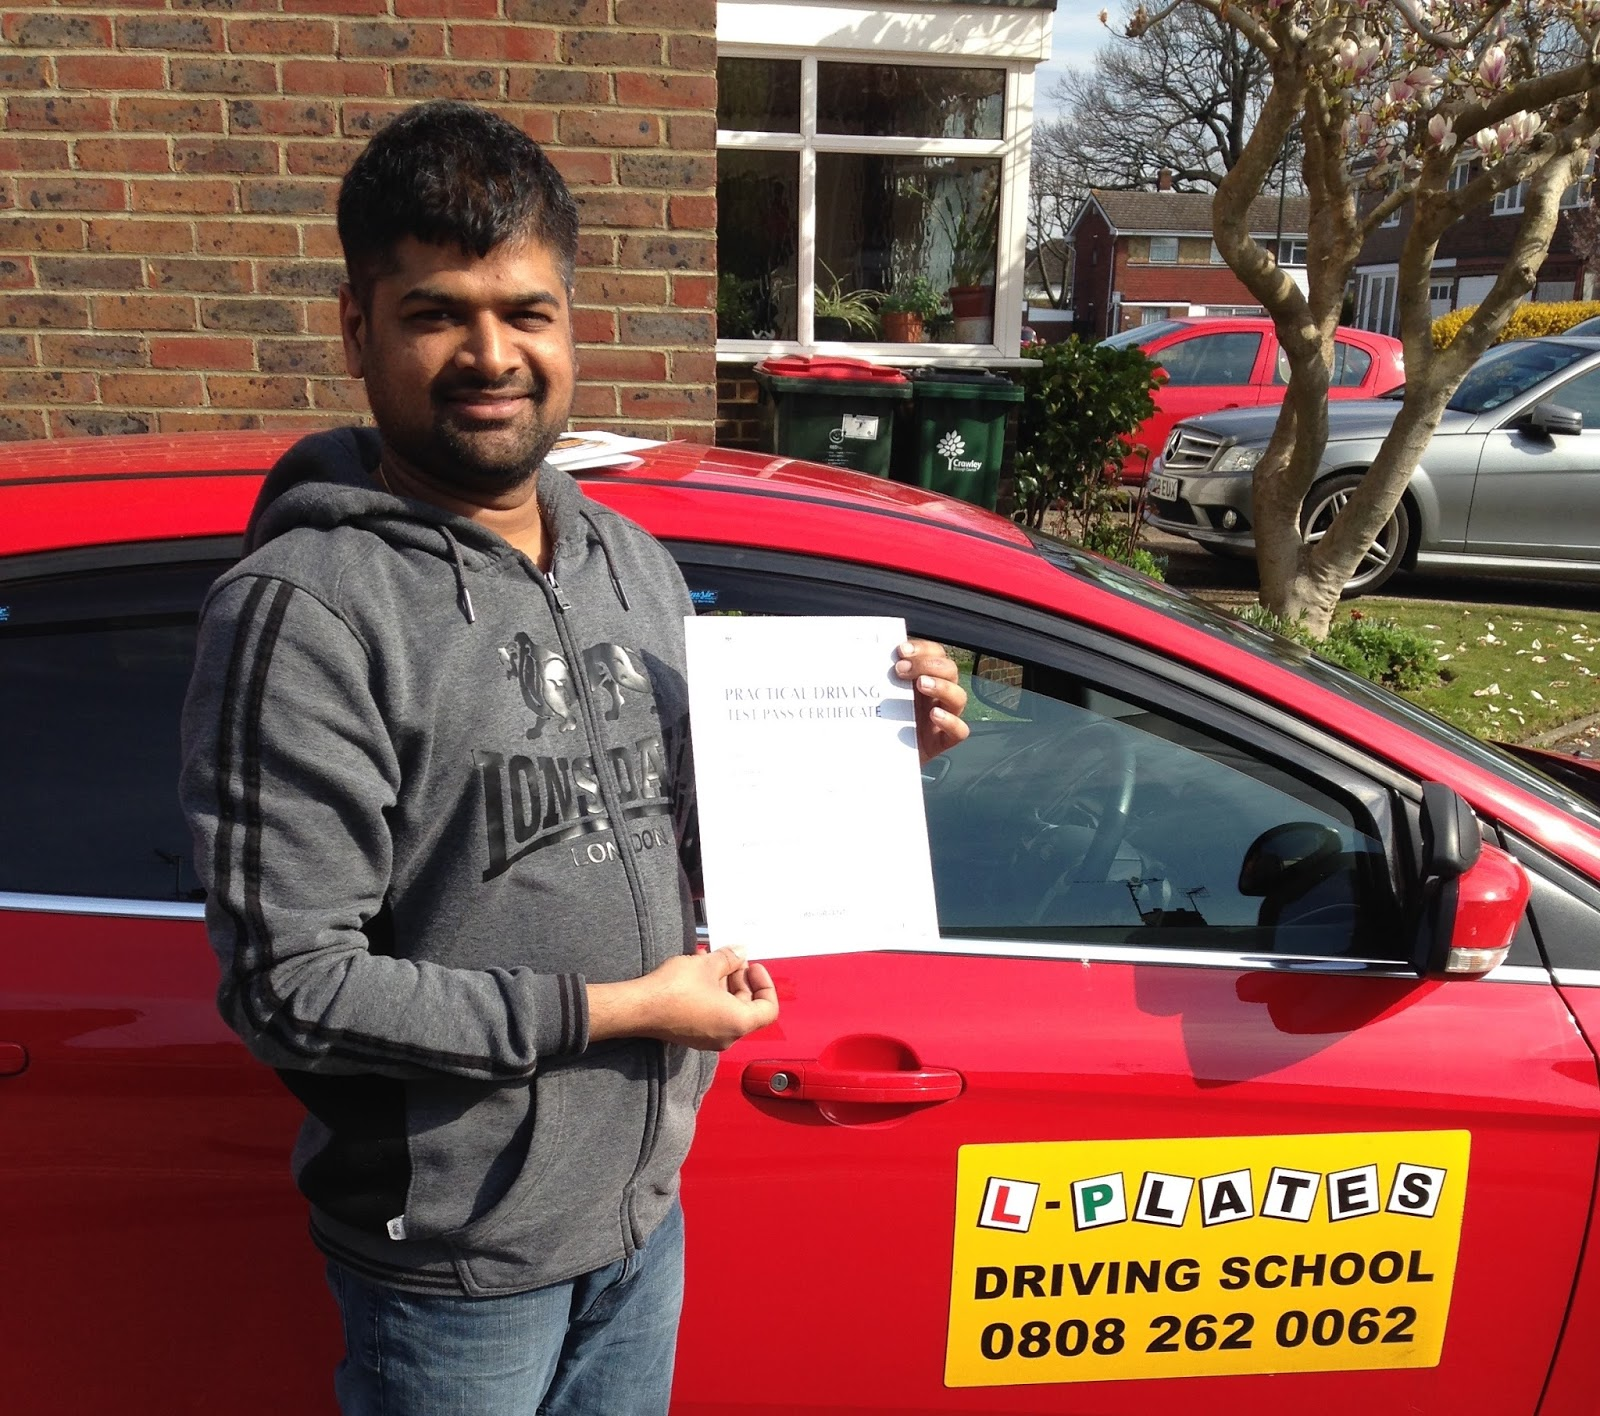 Driving School In Hastings With Automatic Car